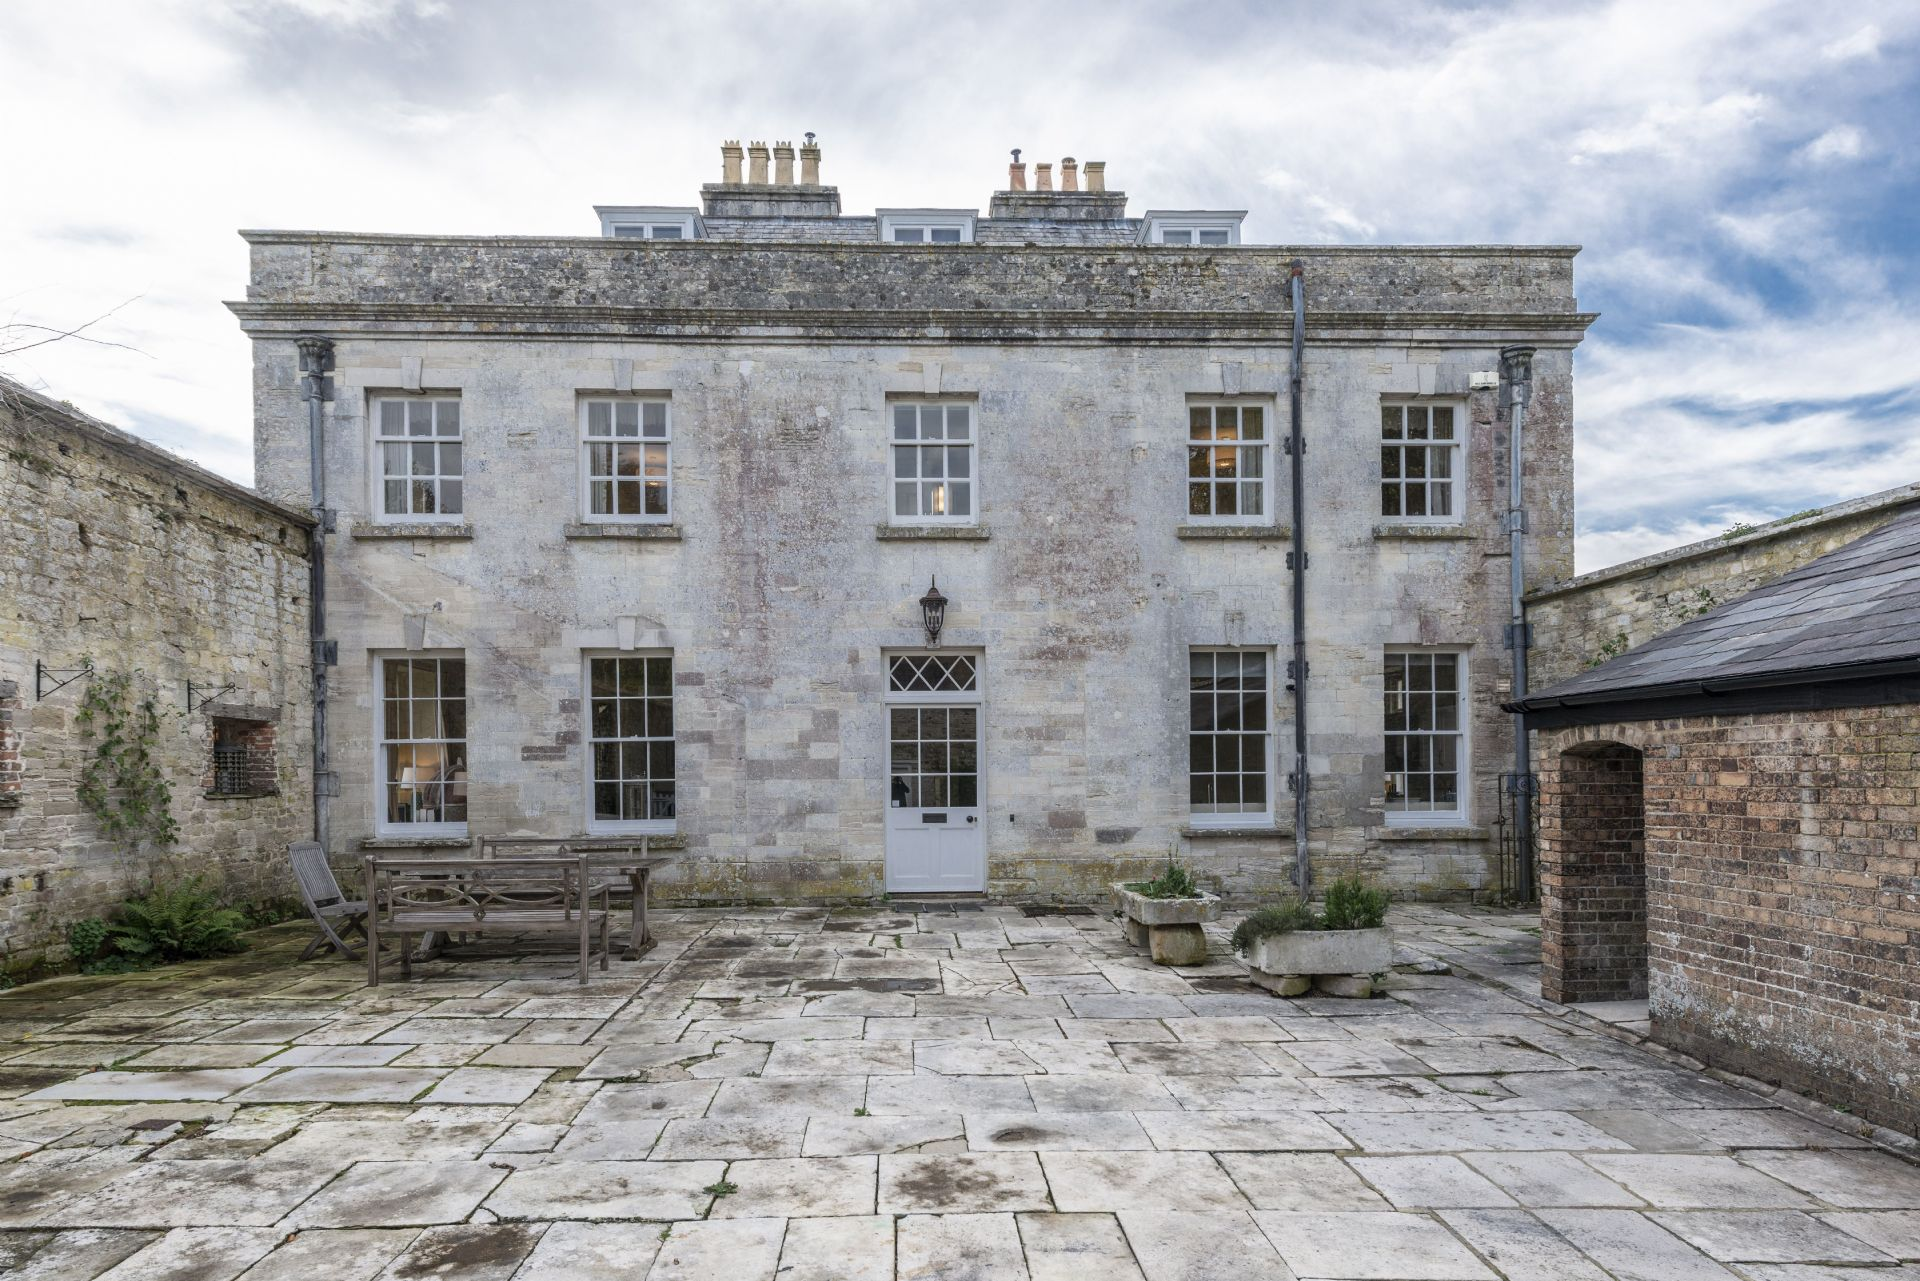 The Courtyard House is located in Dorchester and surrounding villages